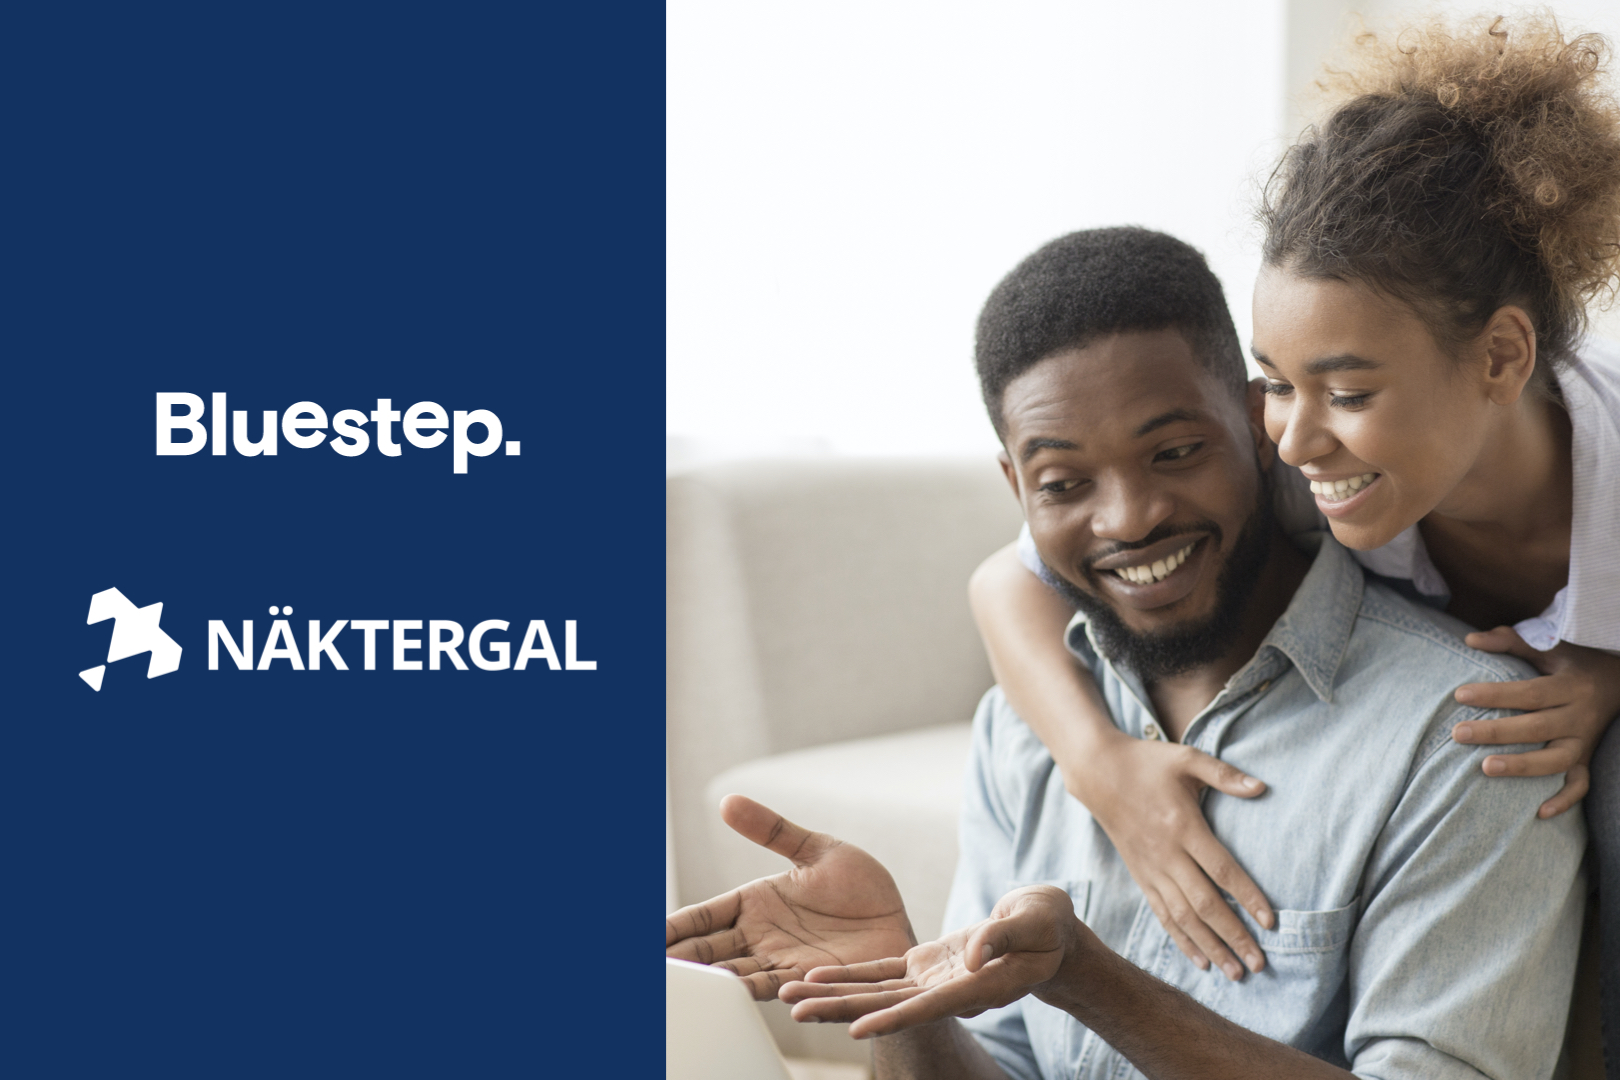 Näktergal is expanding mortgages to Finland in a collaboration with Bluestep Bank